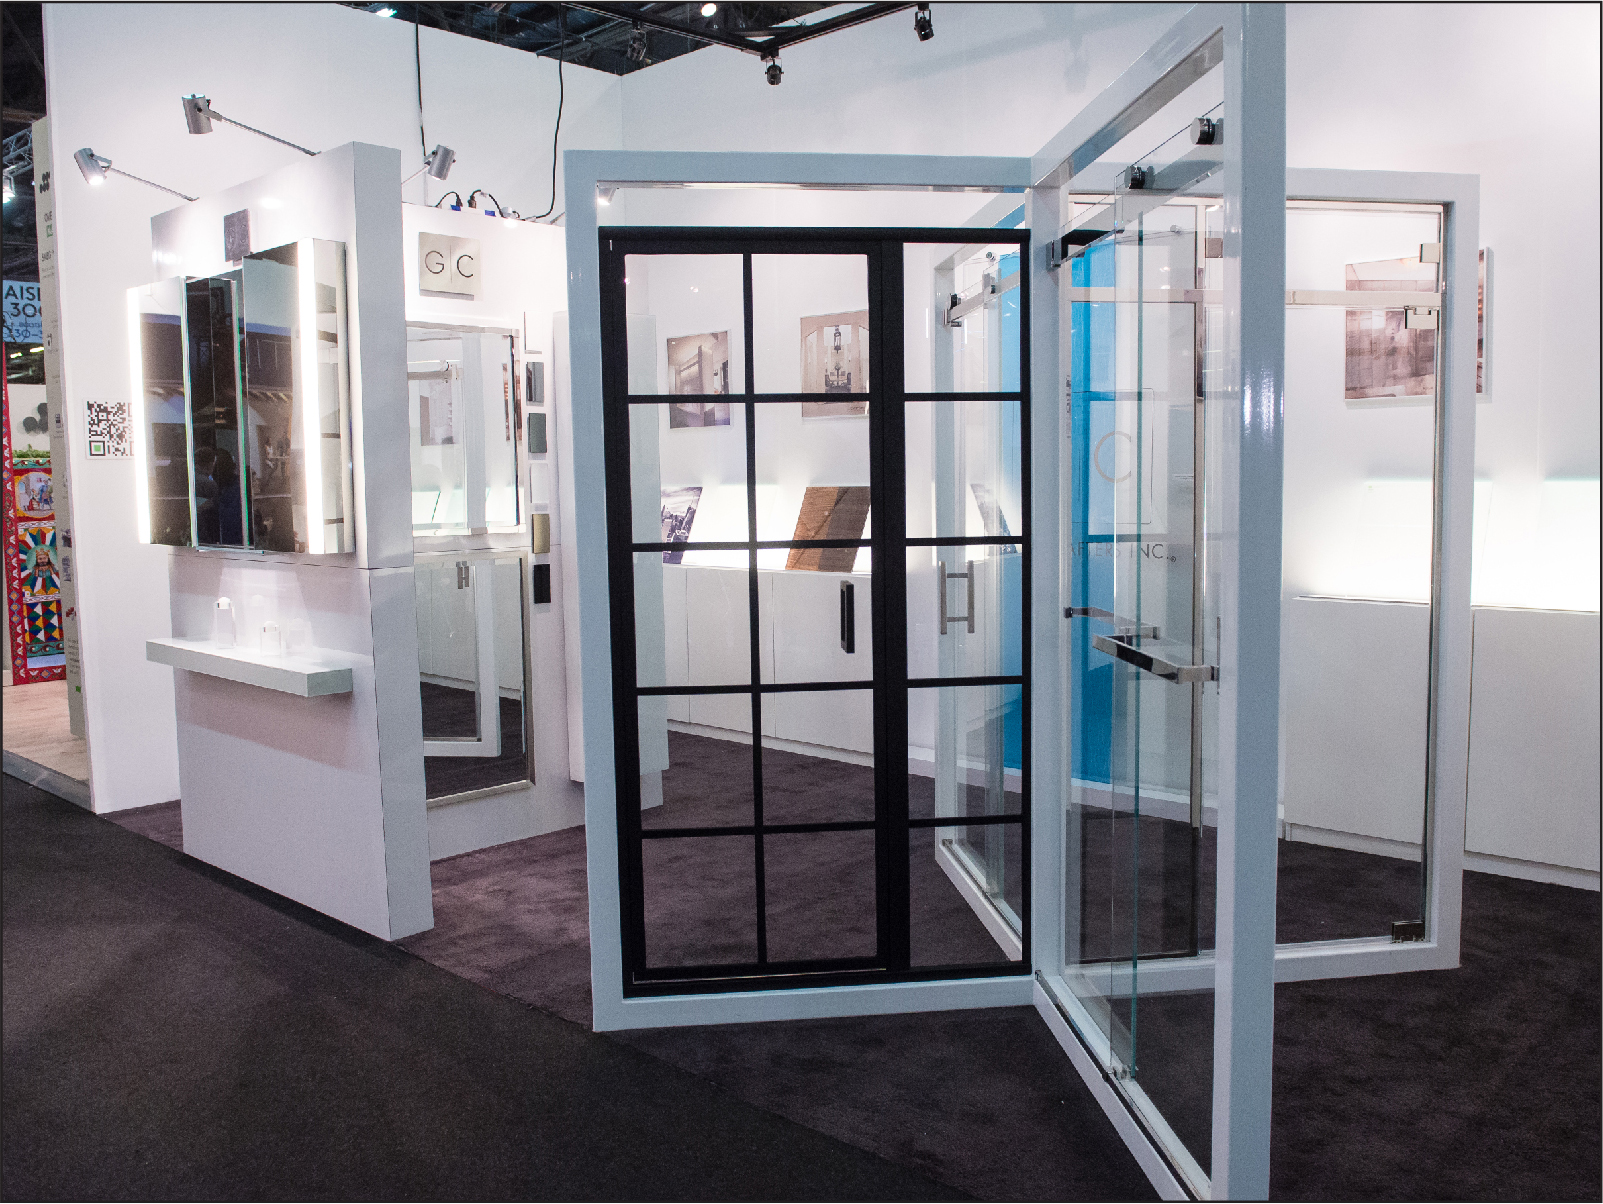 Please Visit GlassCraftersu0027 Booth #482 Where We Will Be Displaying A  Variety Of Designs From Our Custom Shower Door Series And Luxury Medicine  Cabinet + ...